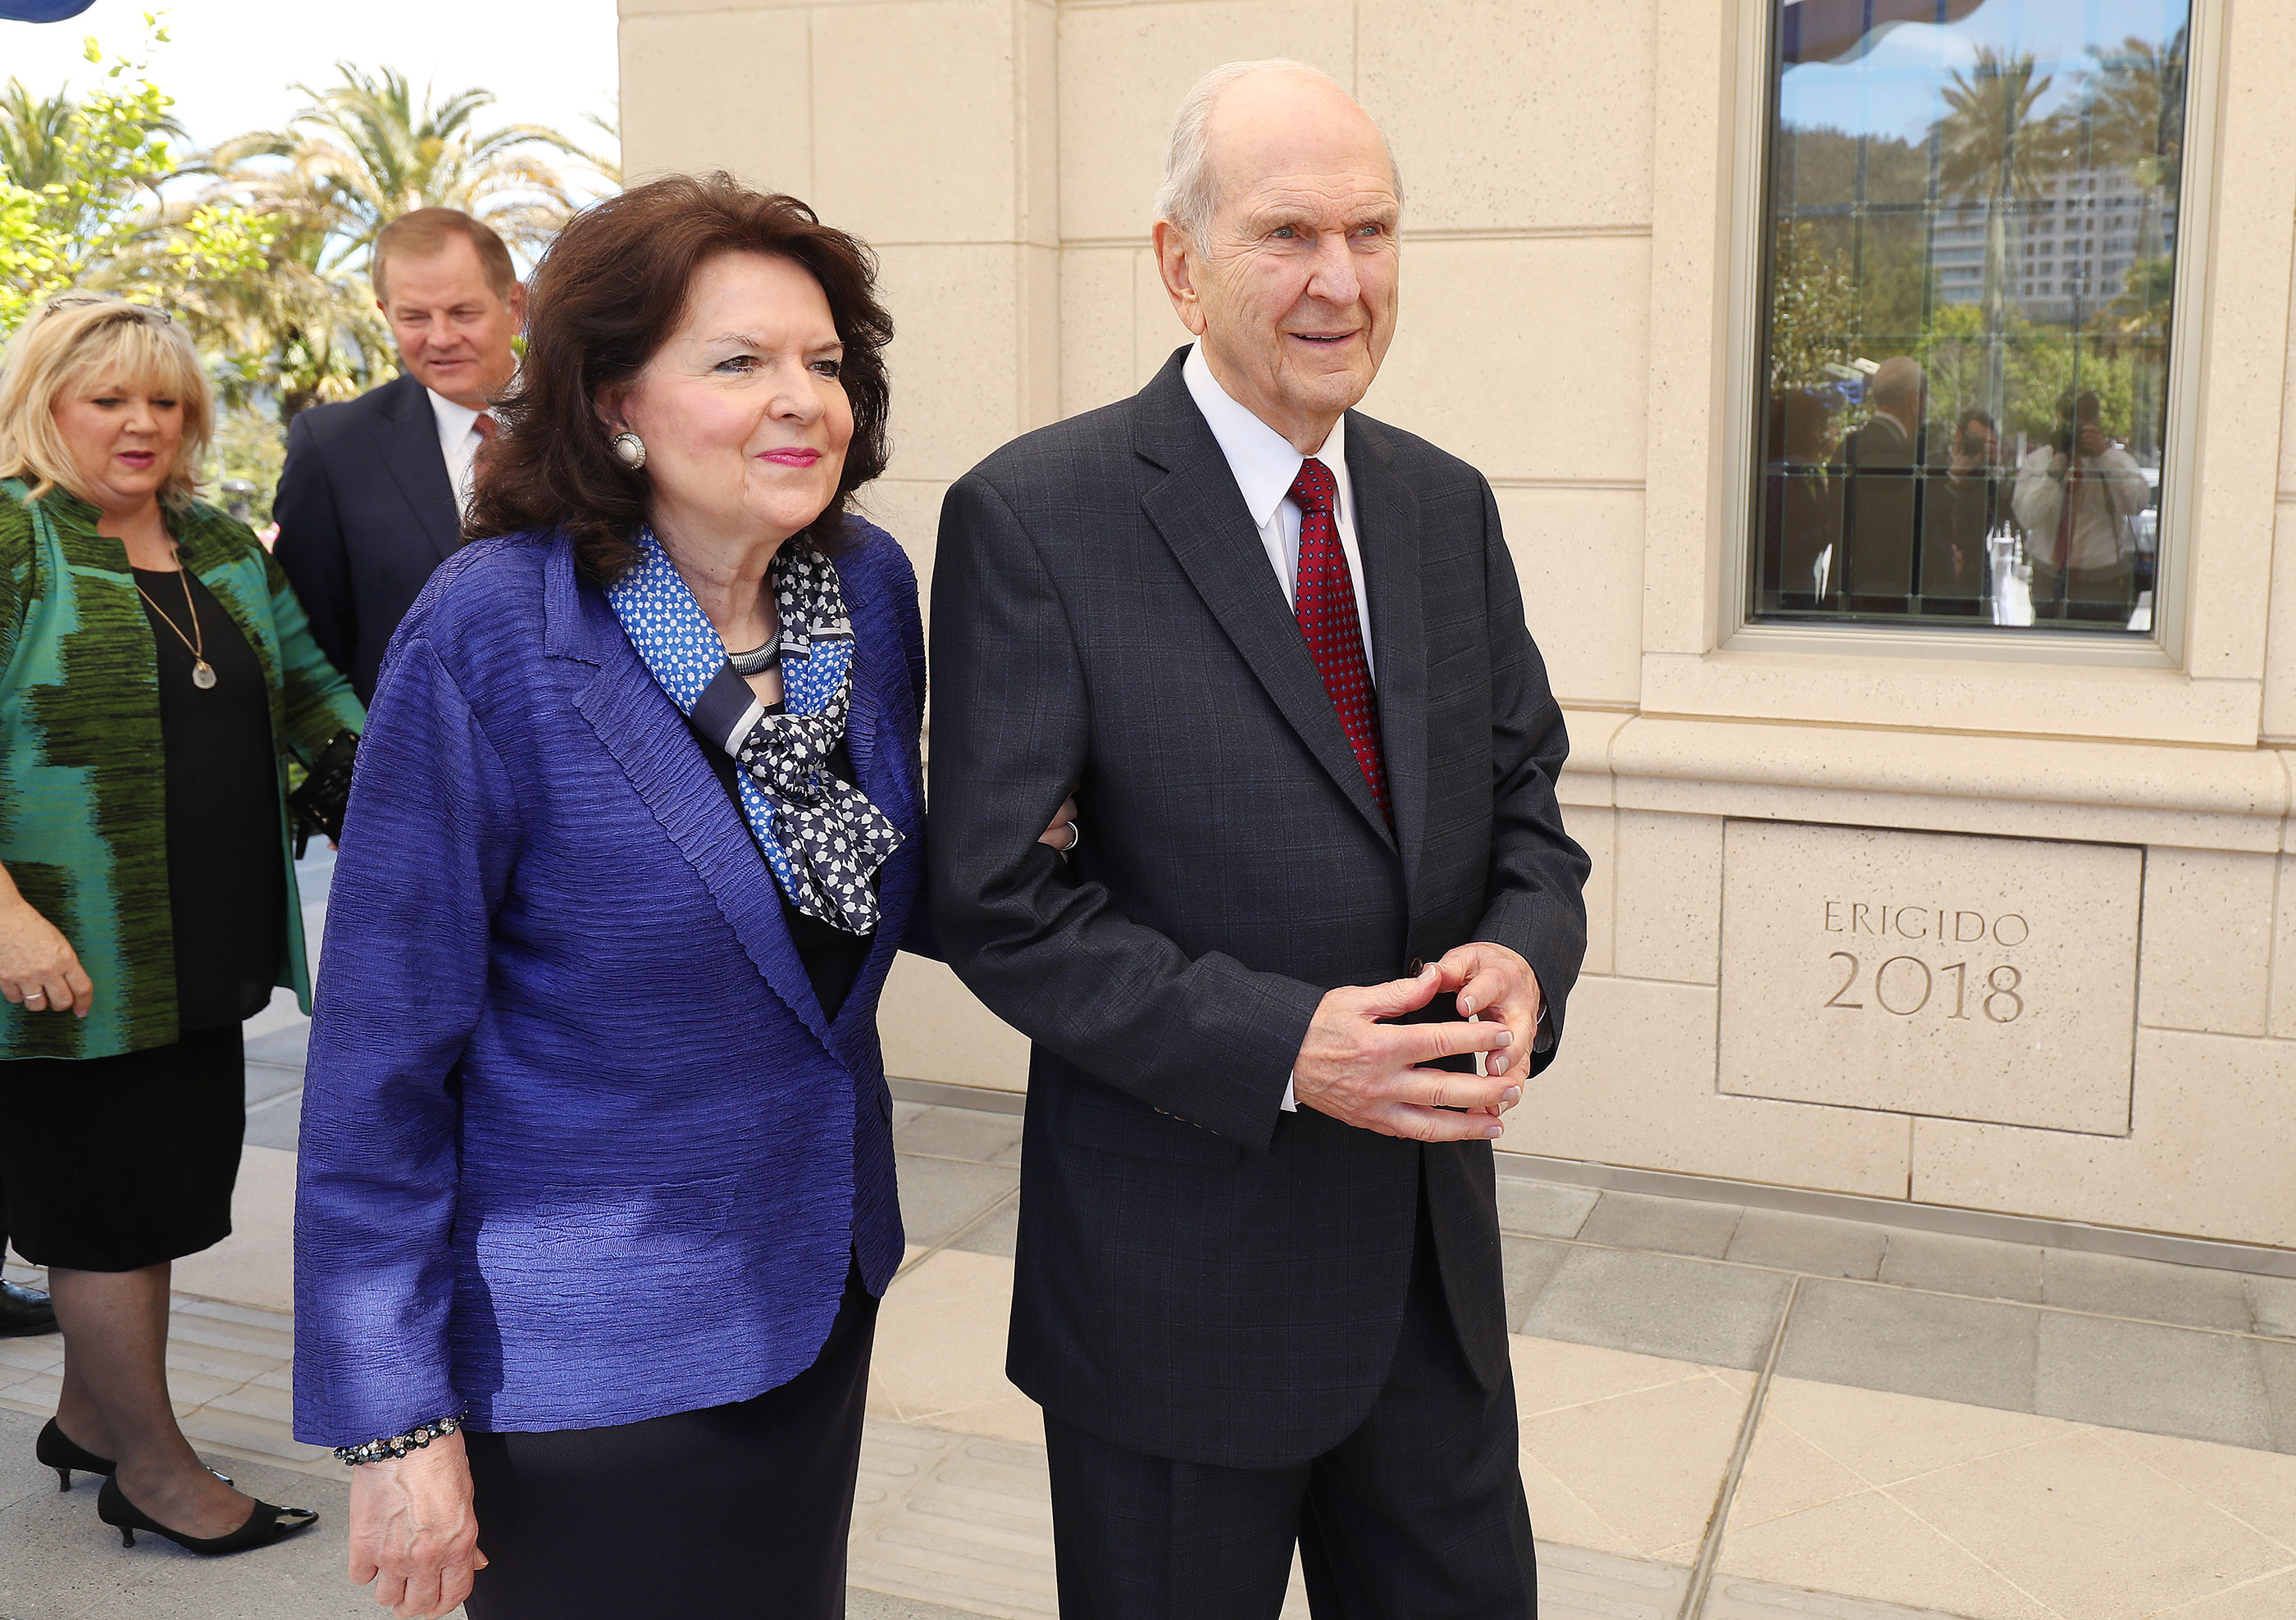 President Russell M. Nelson of The Church of Jesus Christ of Latter-day Saints and his wife, Sister Wendy Nelson, and Elder Gary E. Stevenson of the Quorum of the Twelve Apostles and his wife, Sister Lesa Stevenson, walk near the temple in Concepcion, Chile, on Saturday, Oct. 27, 2018.